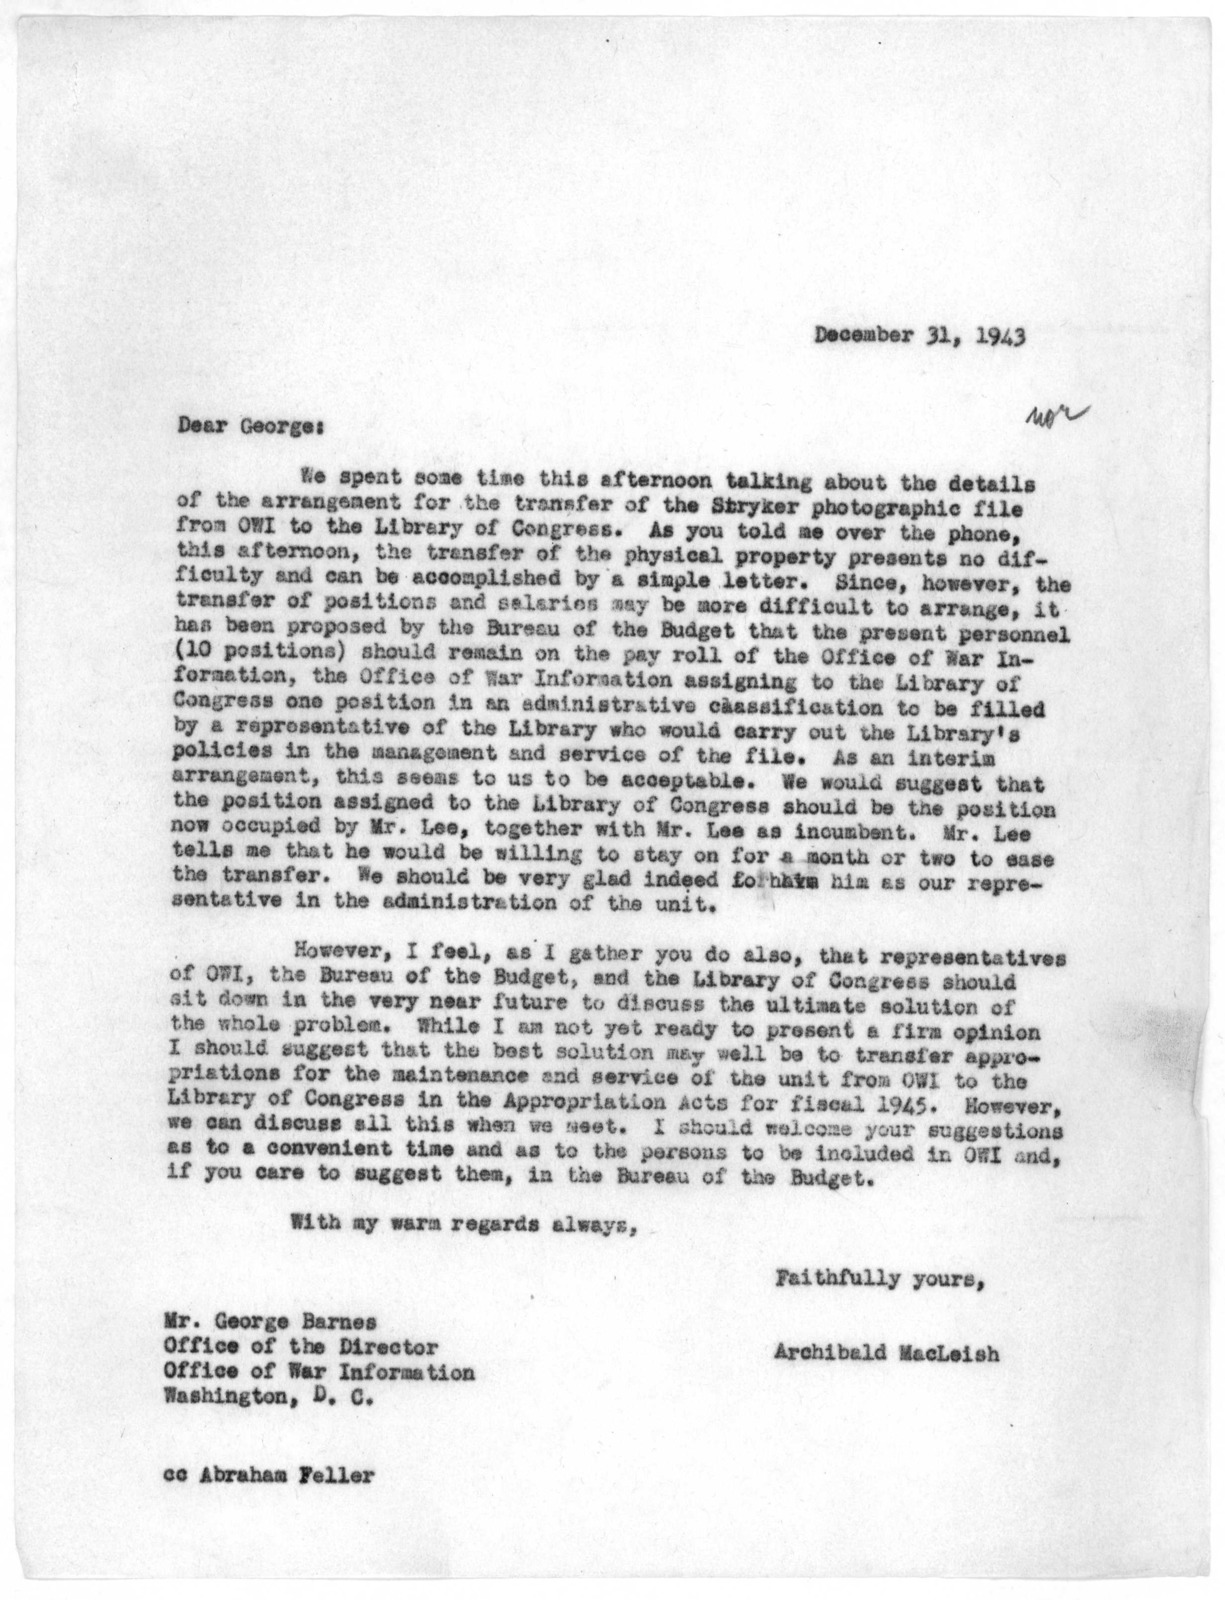 Letter from Archibald MacLeish to George Barnes, December 31, 1943